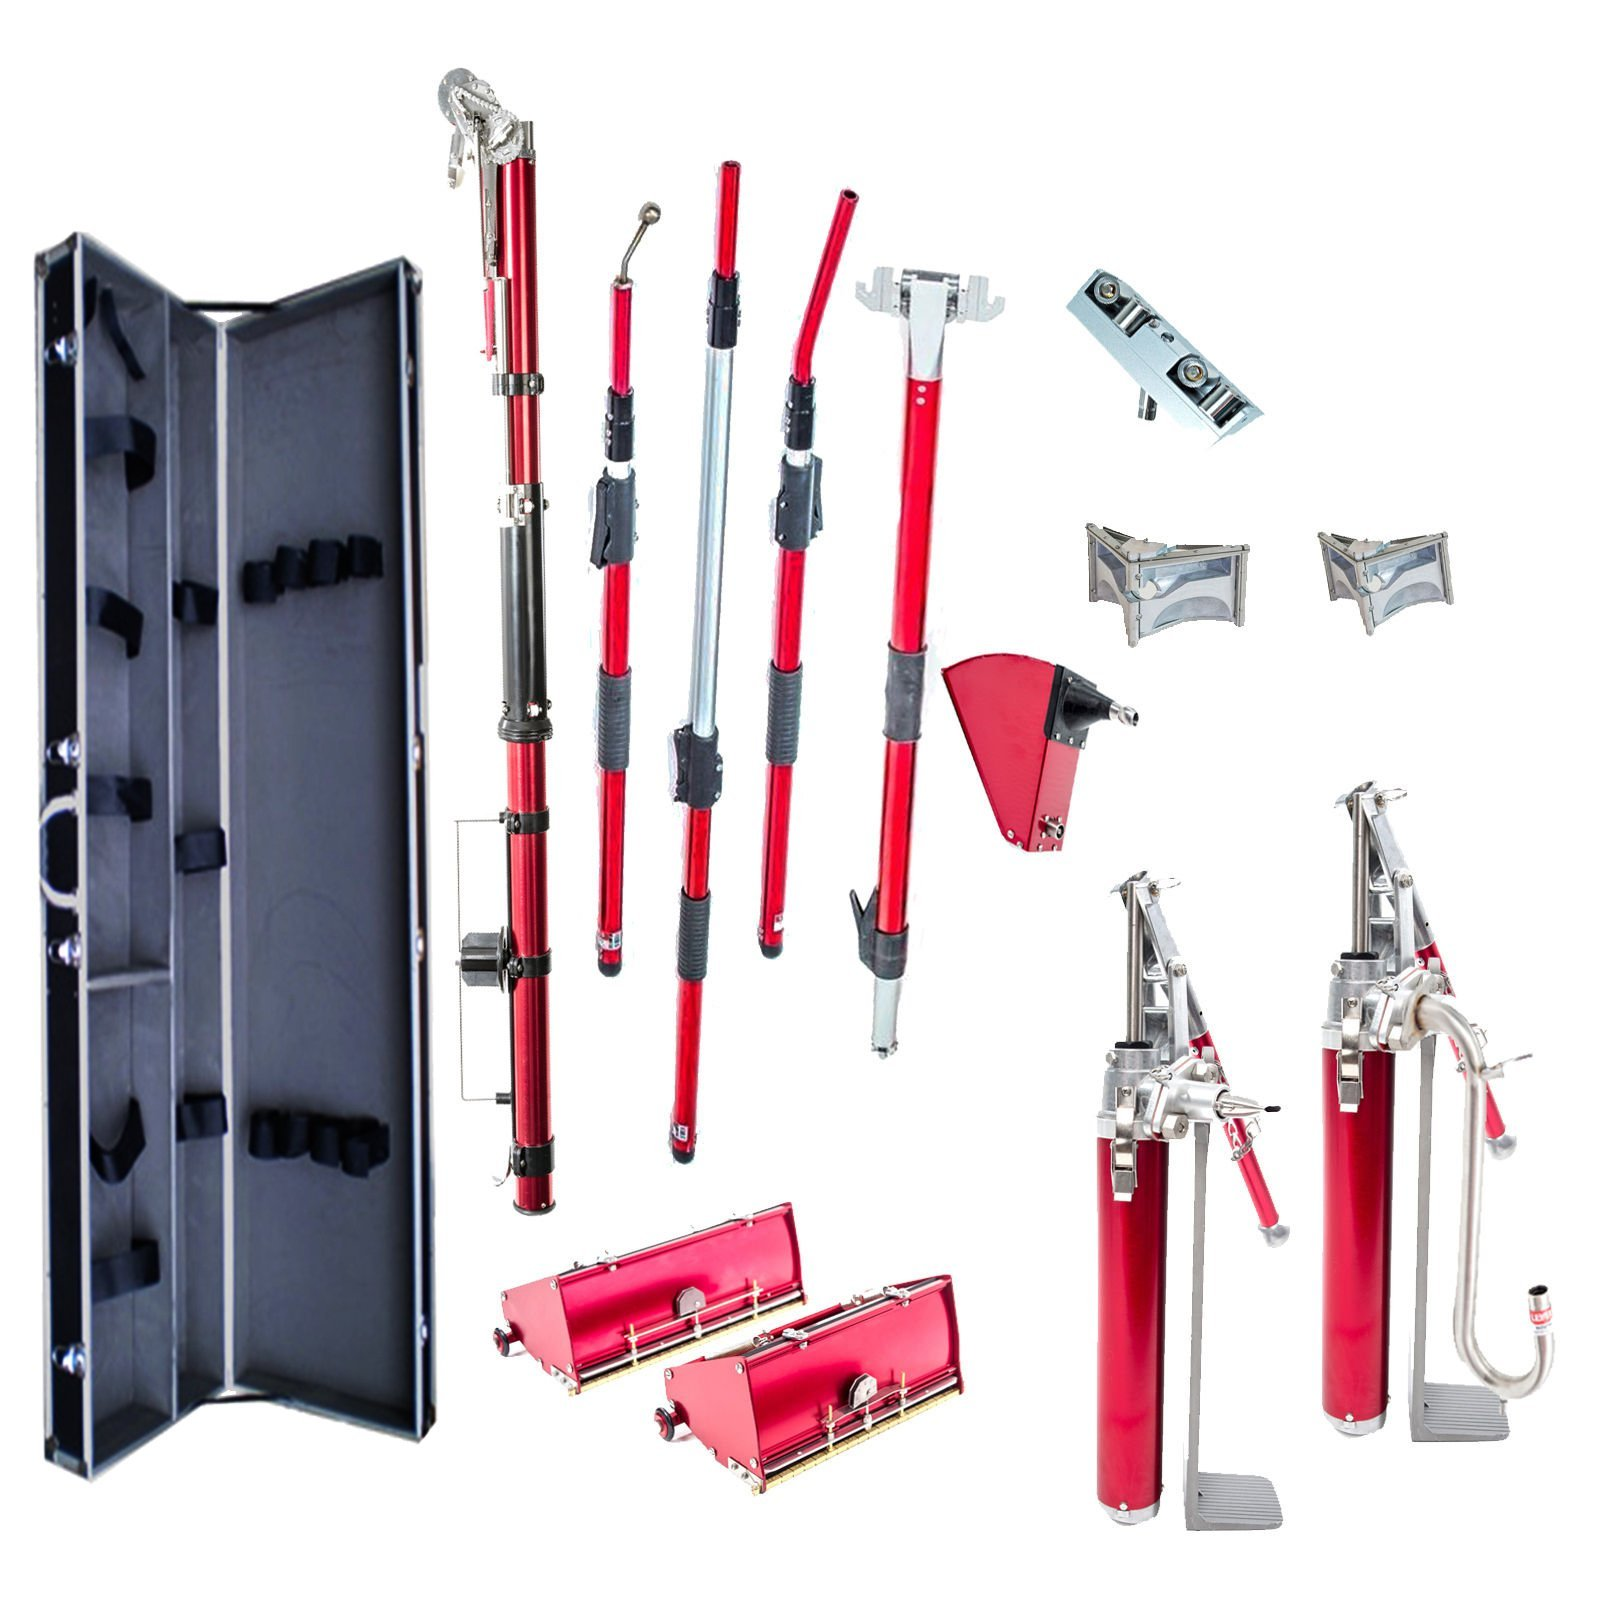 Level5 Pro Complete Extendable Full Set of Automatic Drywall Tools w/ FREE Tool Case by Level5 Tools